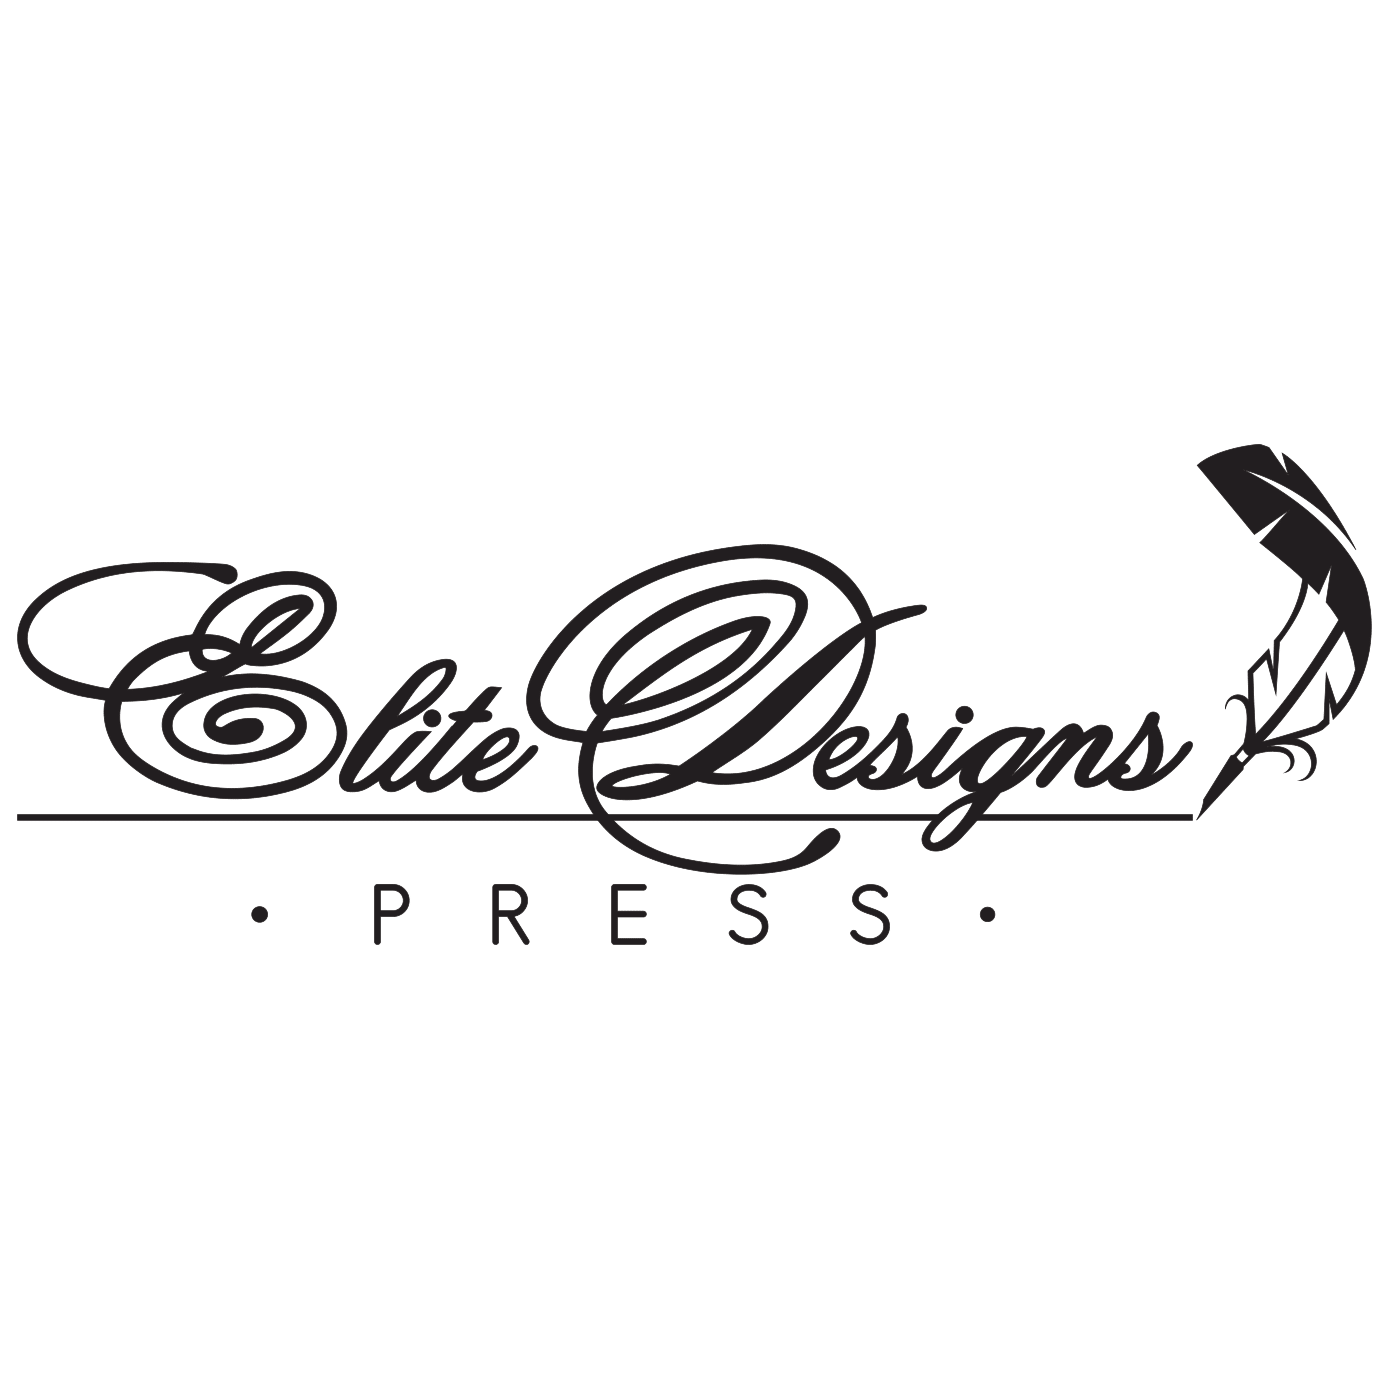 Elite Desings Press